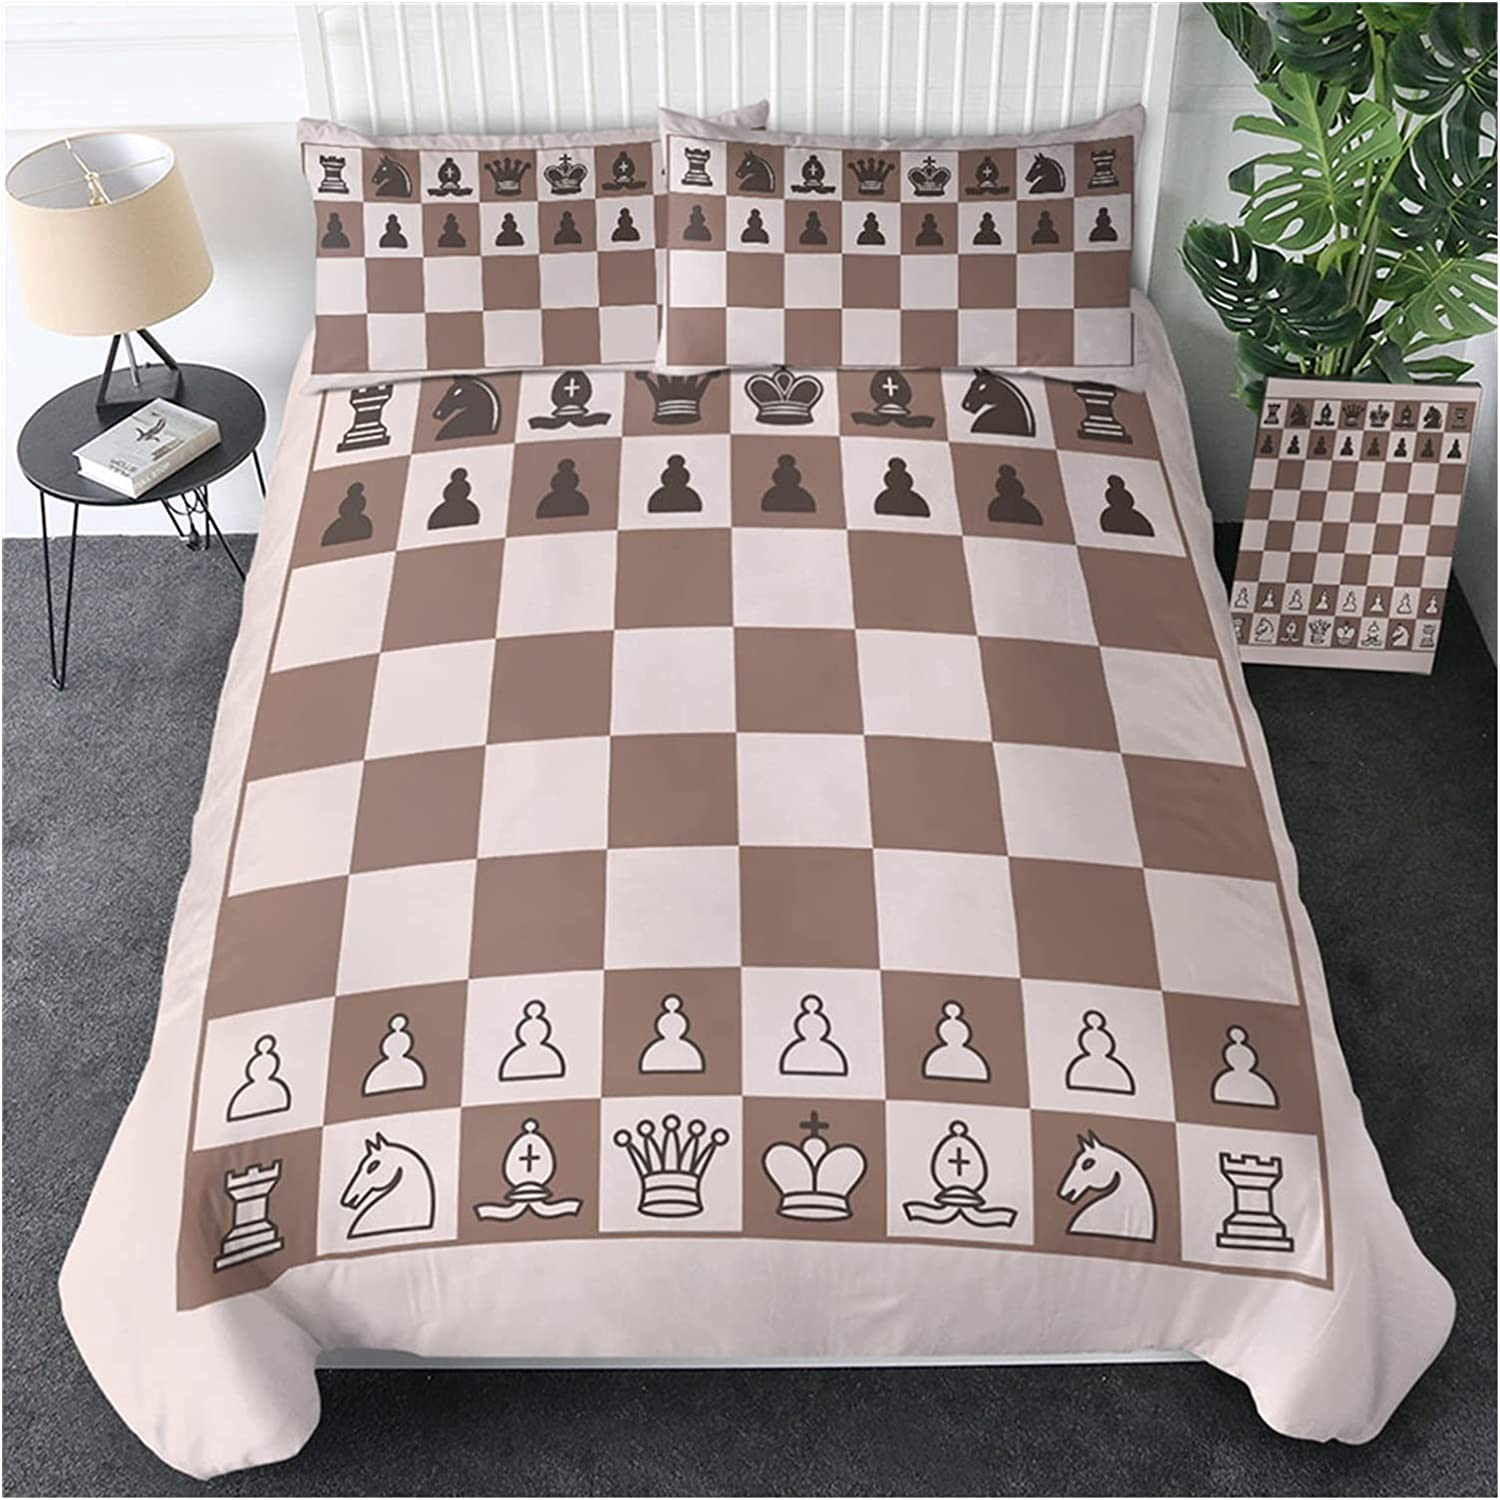 Max 75% OFF Award-winning store BESTTEXE Black and White Duvet Cover Chess S Games Board Bedding